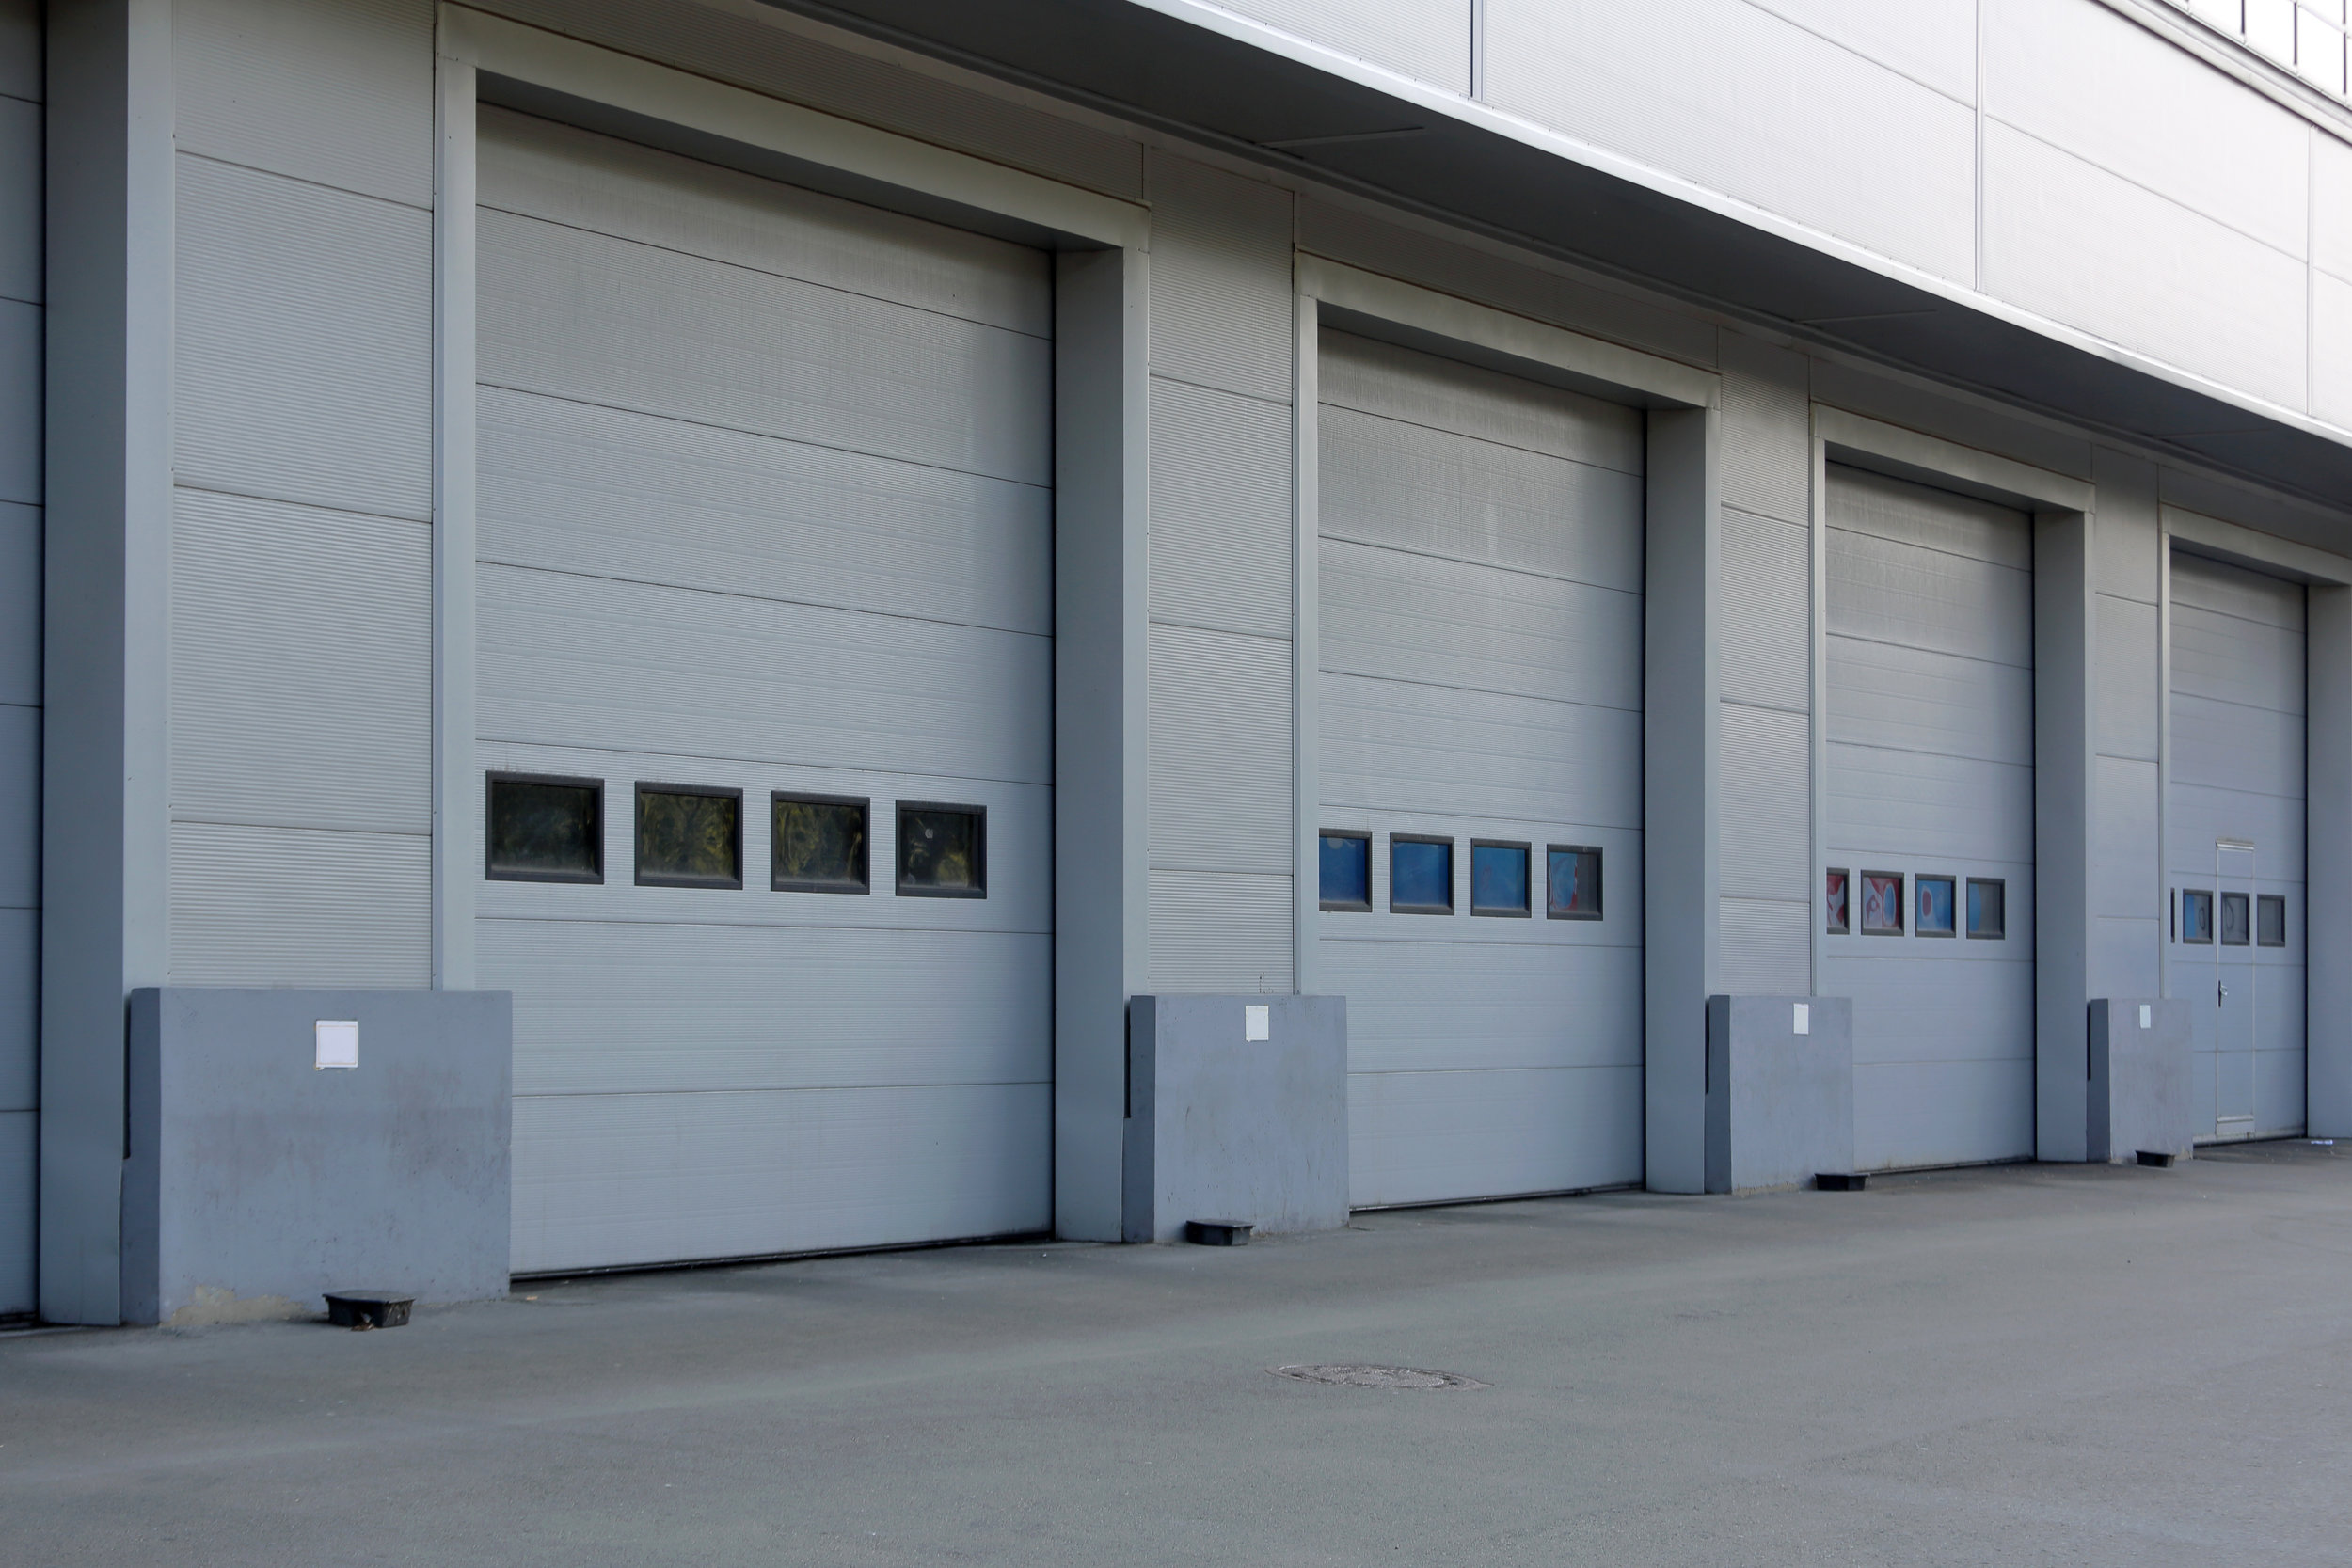 Commercial Garage doors External view white with windows.jpeg